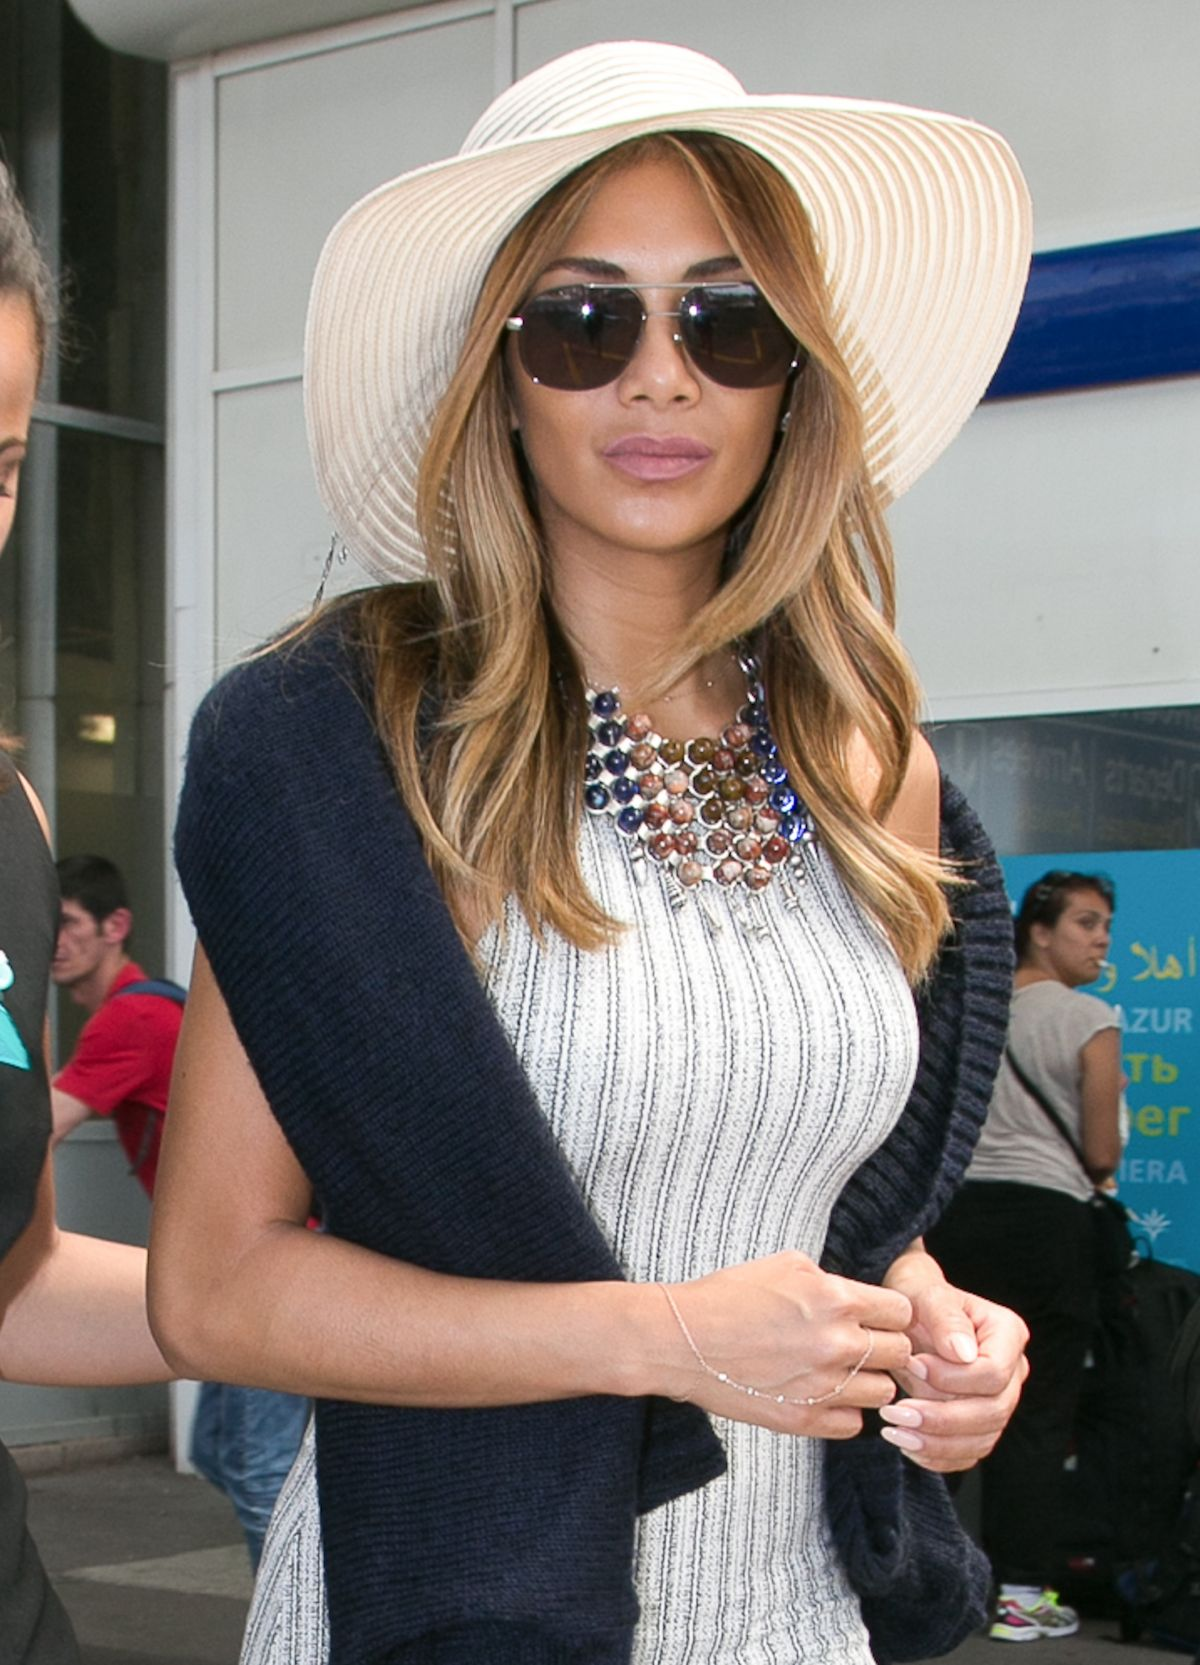 NICOLE SCHERZINGER Arrives at Airport in Nice 05/17/2015